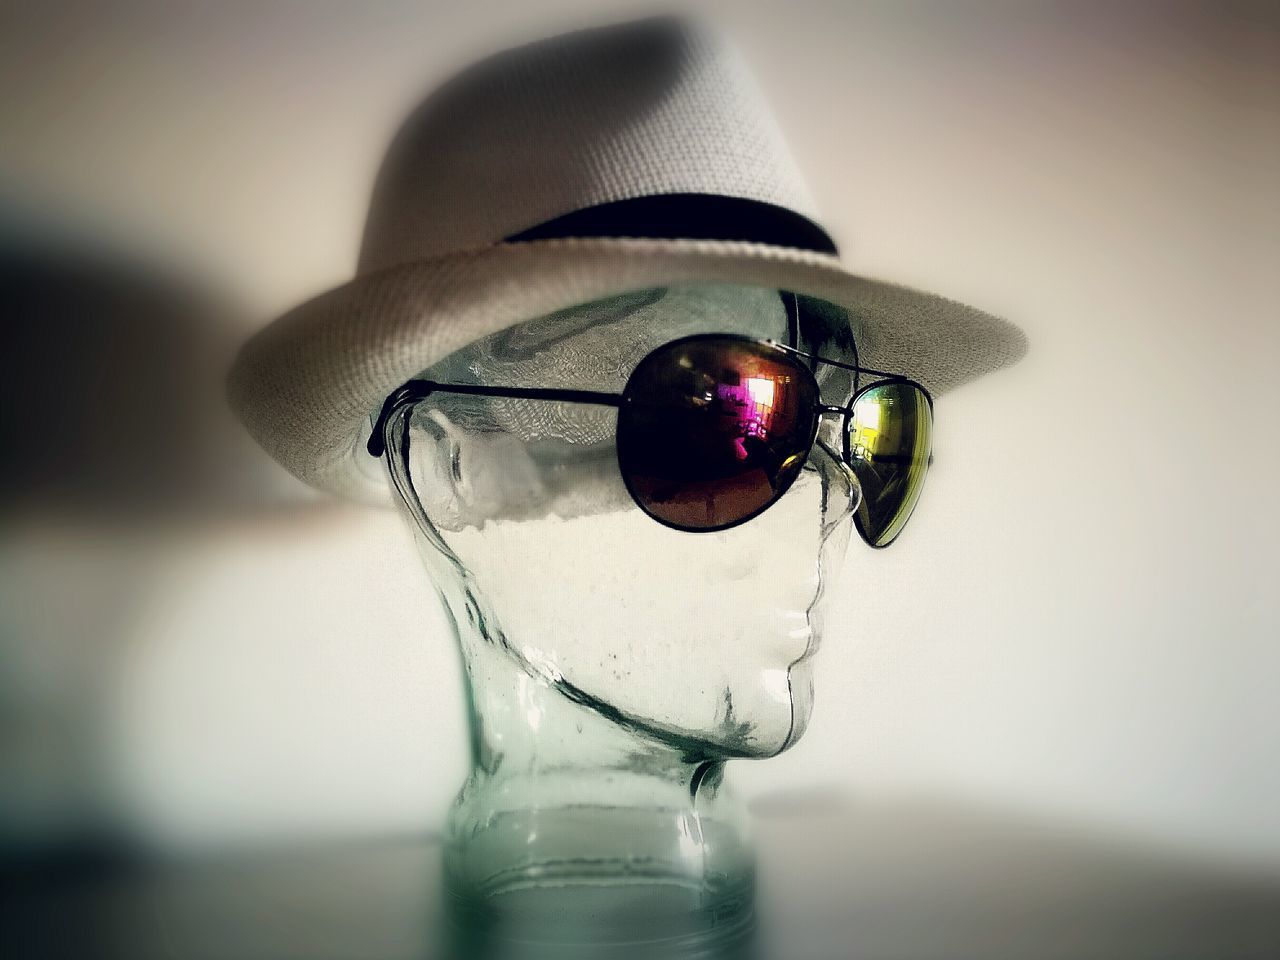 Indoors  Close-up Sunglasses Sunglasses👓 Sunglass  Sunglasses ✌👌 Sonnenbrille Hut Strohhut EyeEmNewHere Huaweiphotography Huawei P9 Leica HuaweiP9 Glass Glaskopf Lieblingsteil